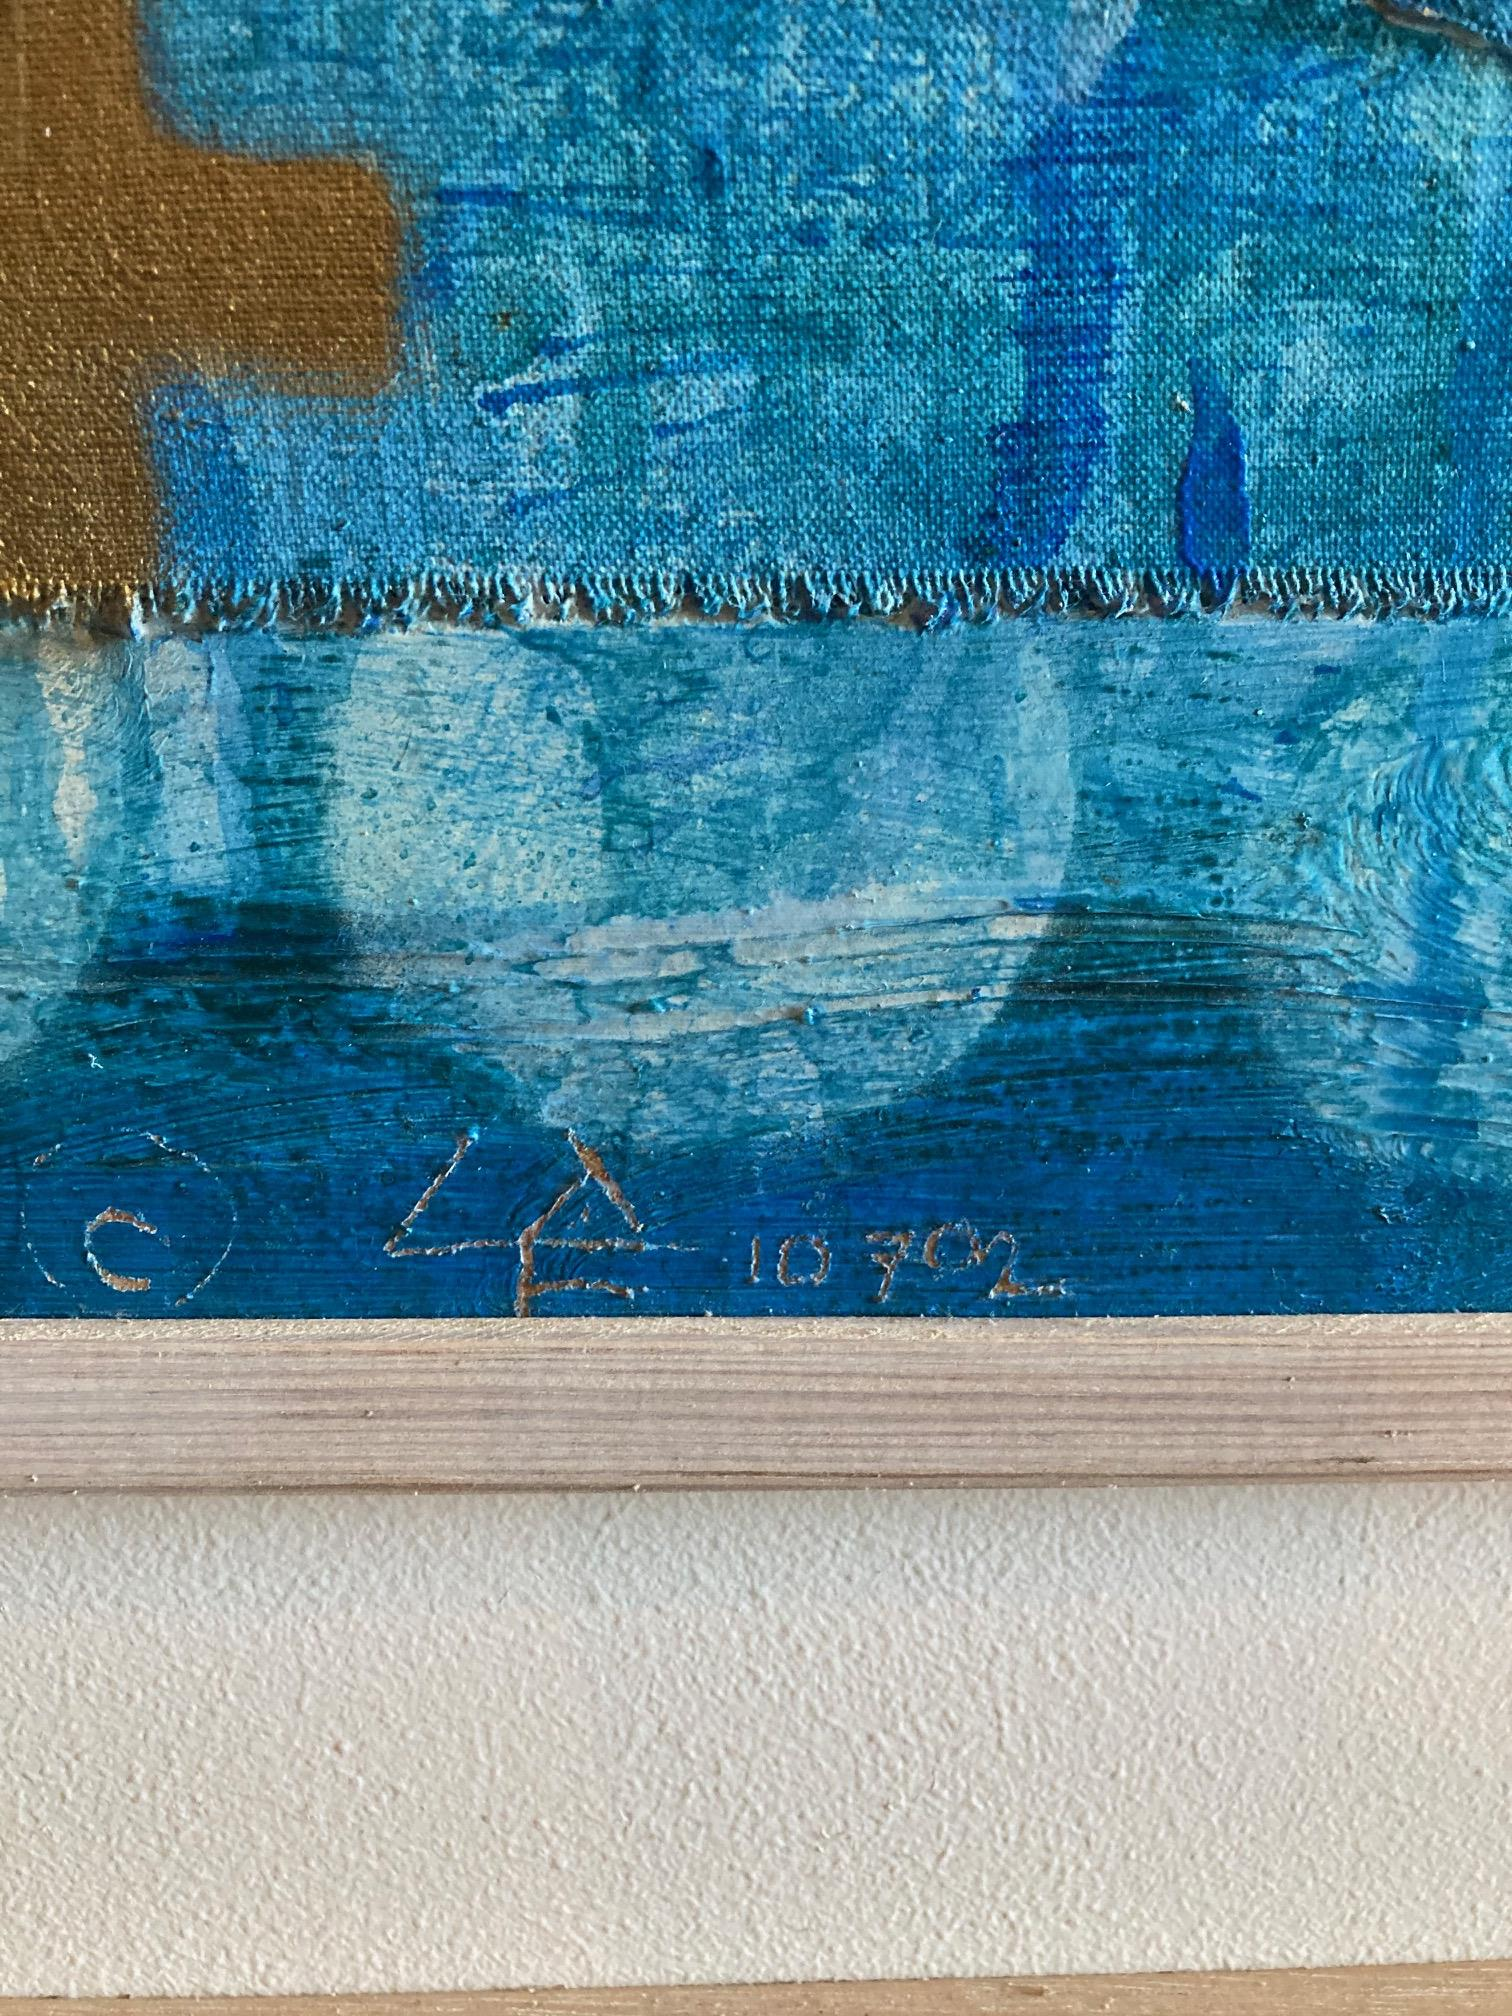 Liam de Fringe (1949) Mixed Media on Board, ''Abstract'' inscribed verso in Gaelic, 31'' x 47'' ( - Image 4 of 6